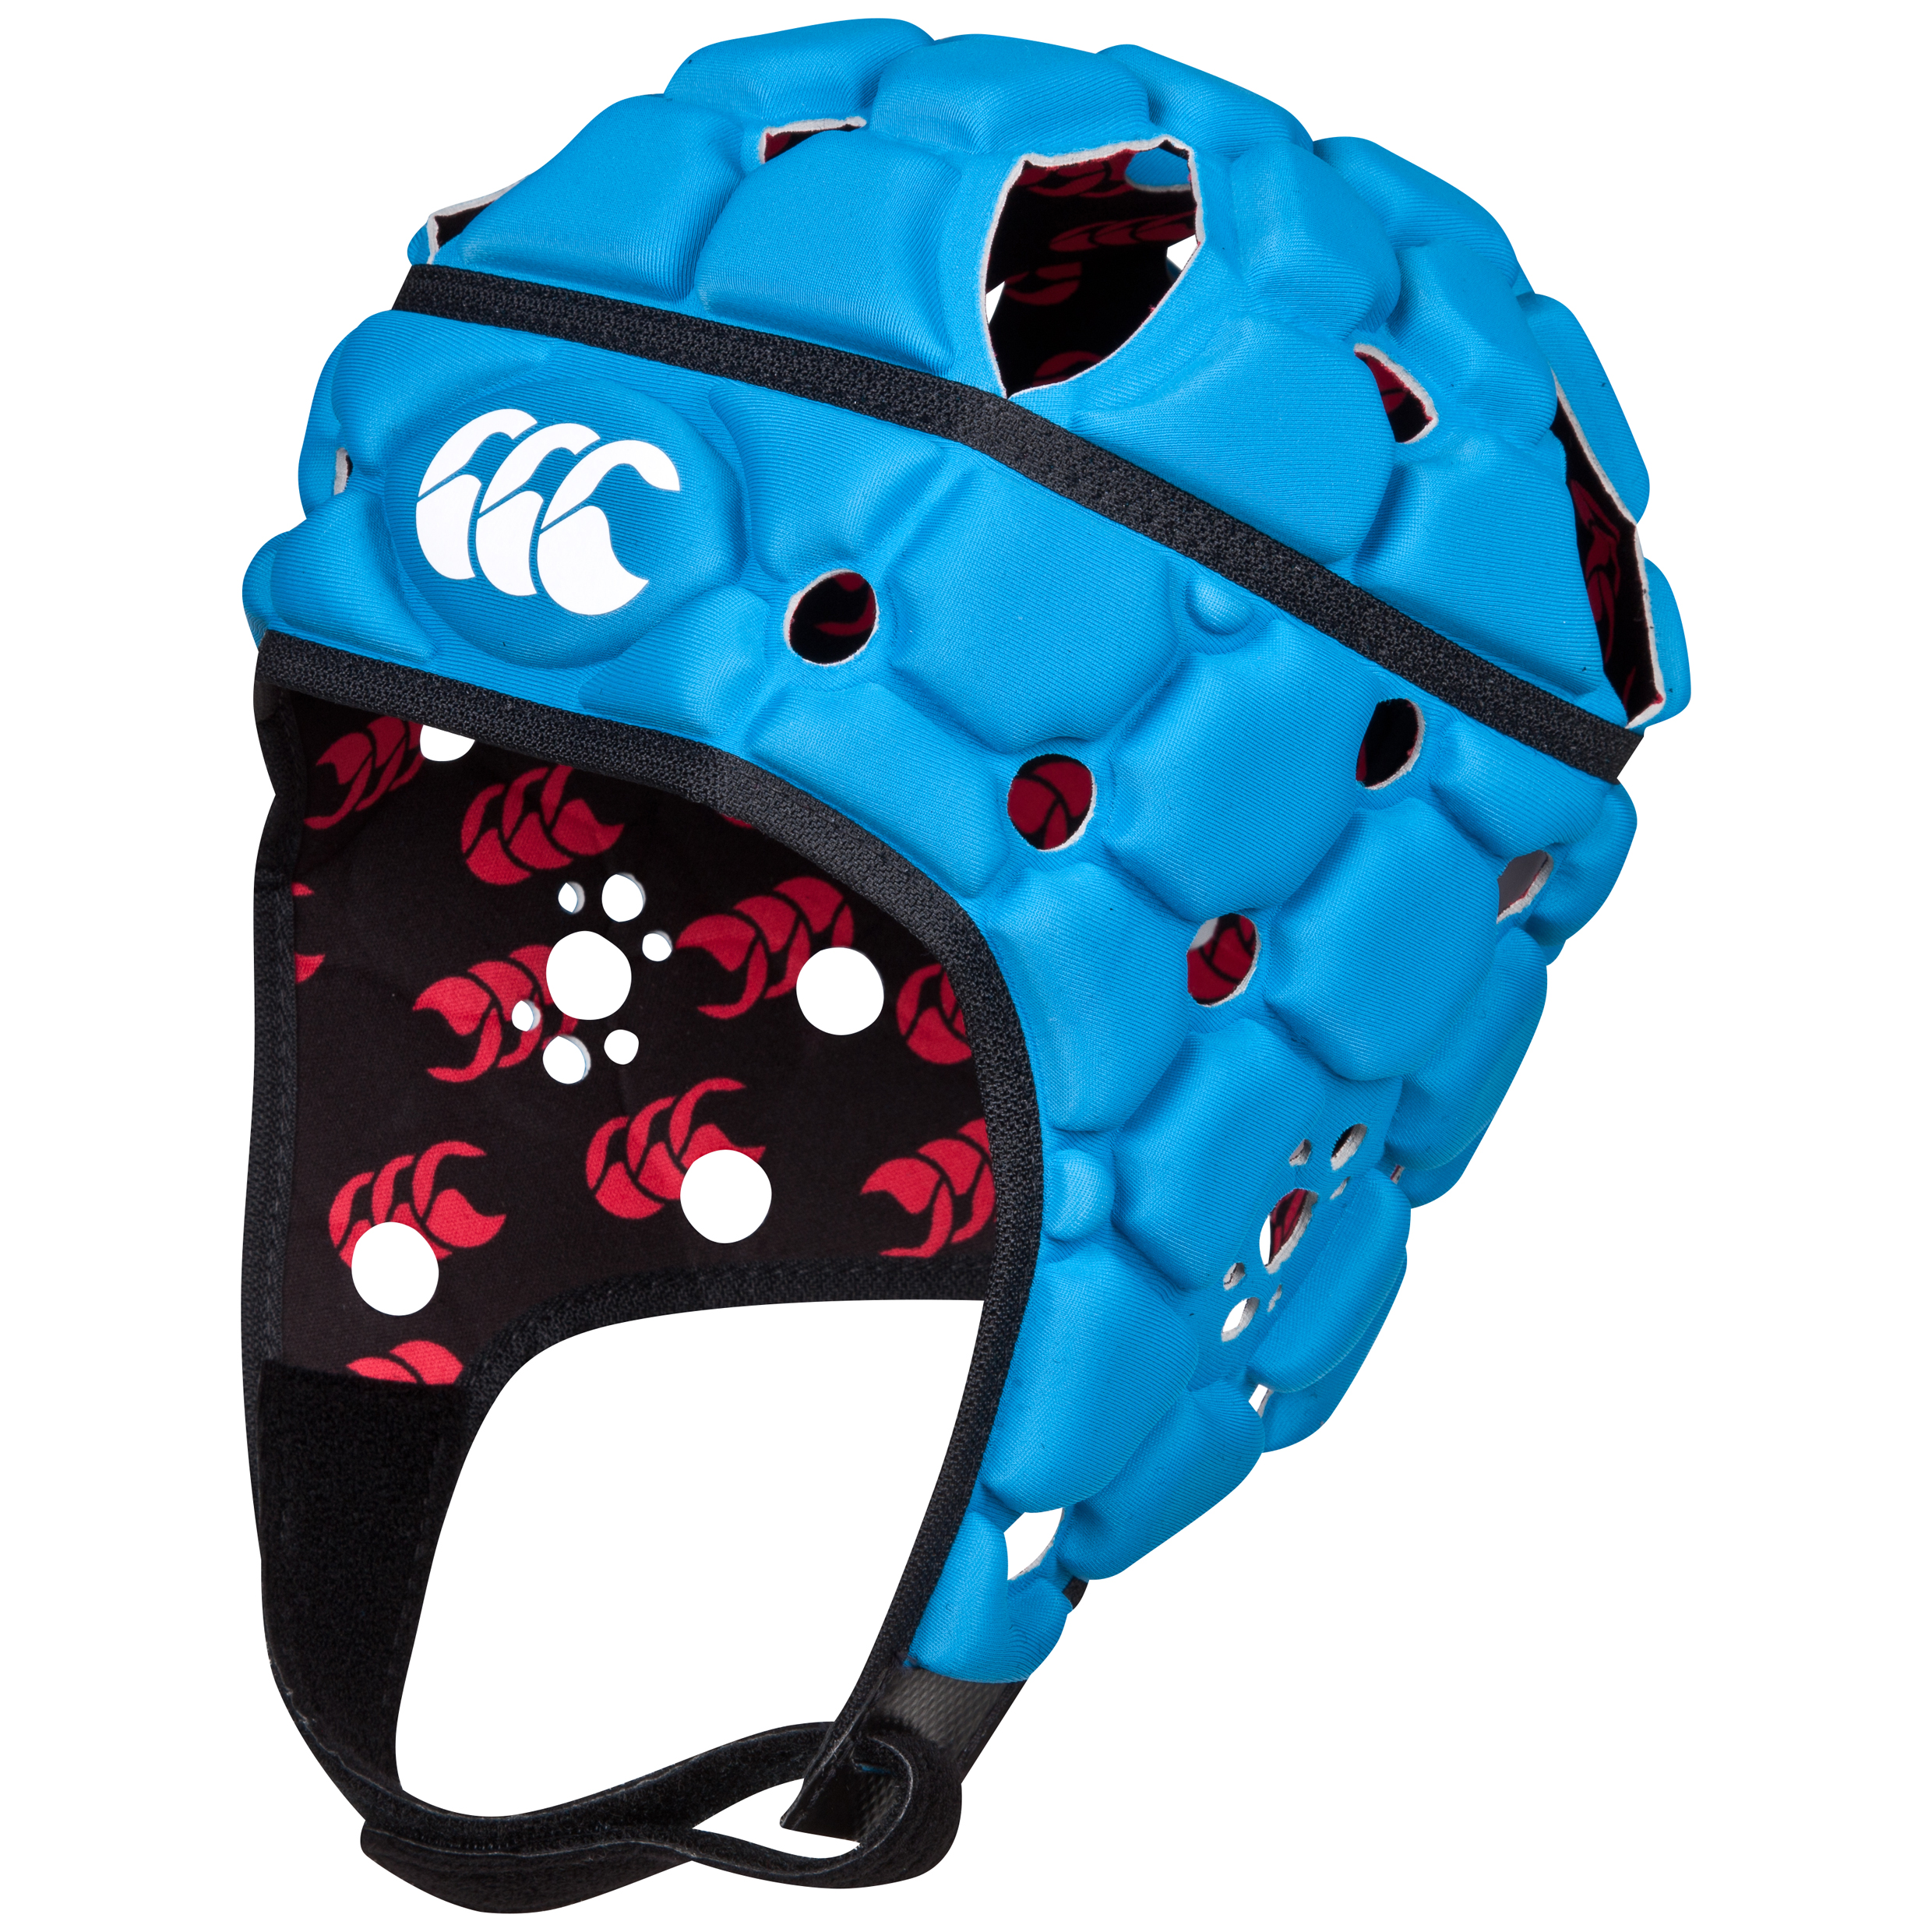 Canterbury Ventilator Headguard Blue